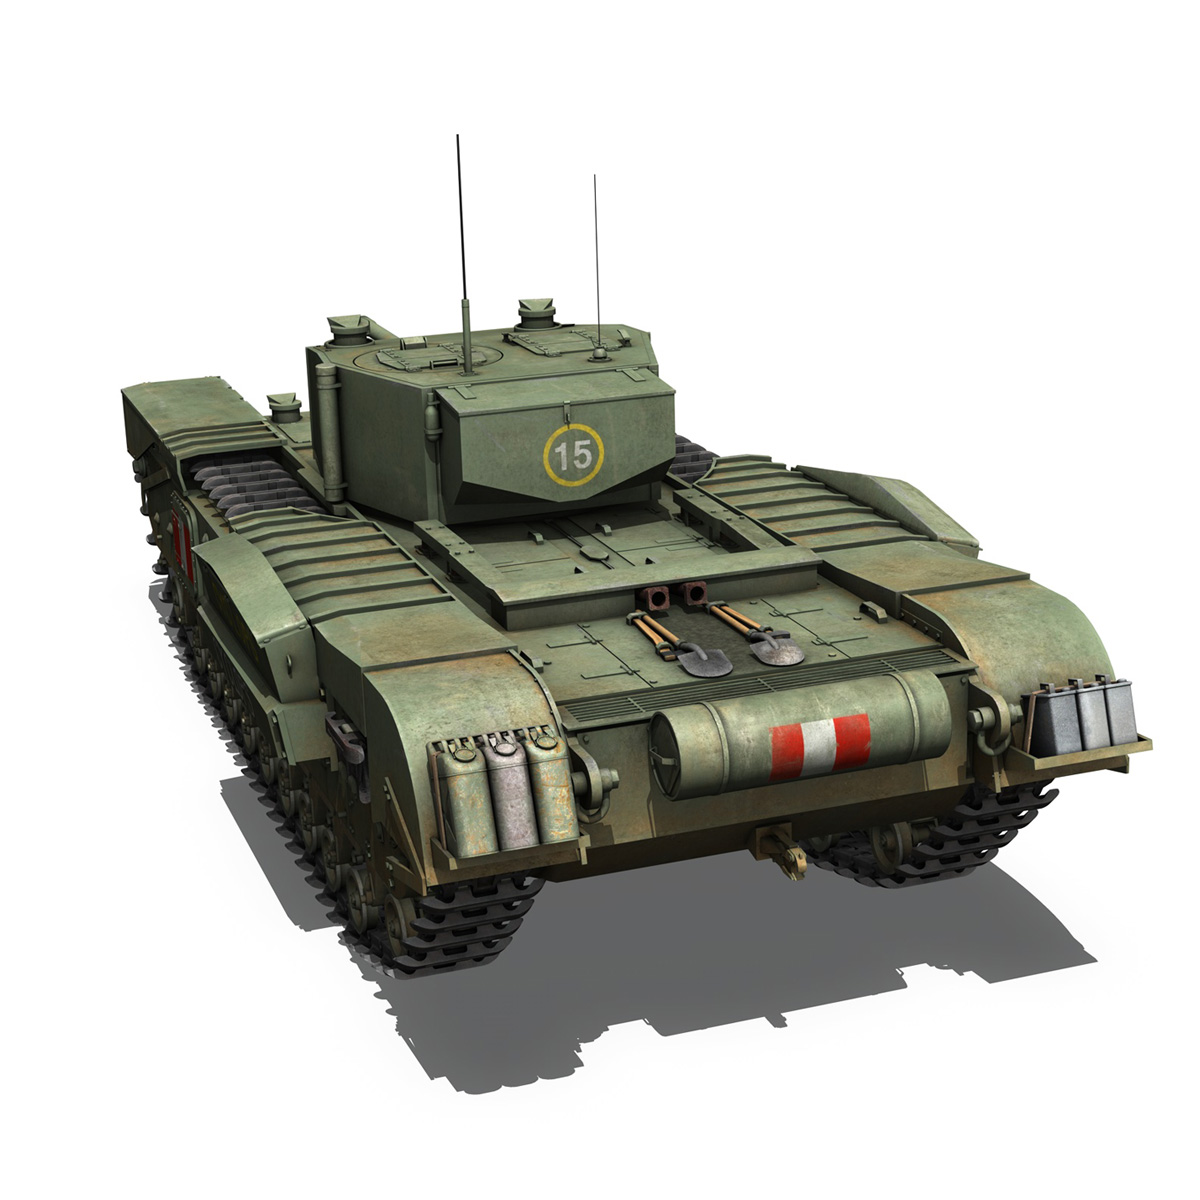 churchill mk.iii - cyclops 3d model 3ds fbx c4d lwo obj 270901